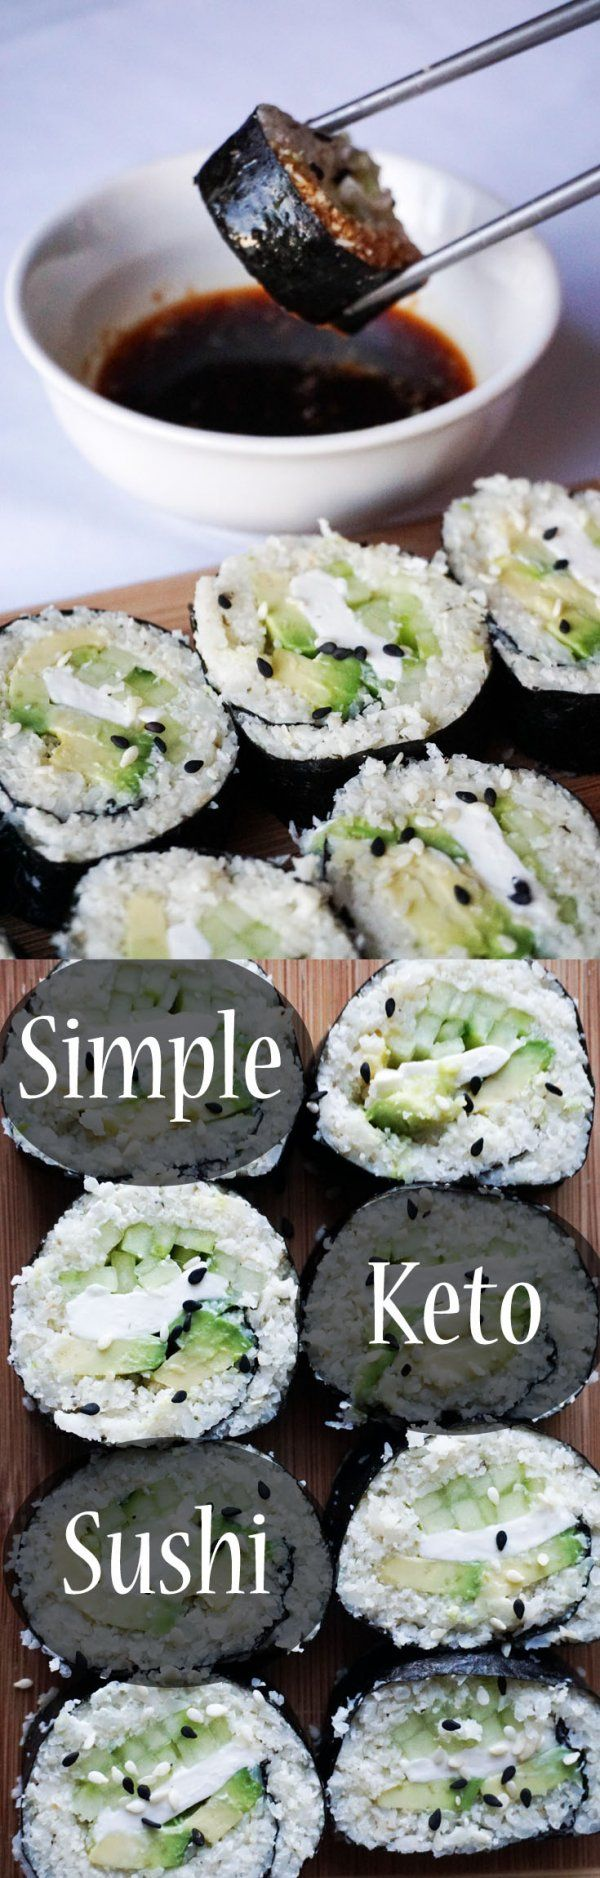 Keto sushi made easy. No fancy equipment required.